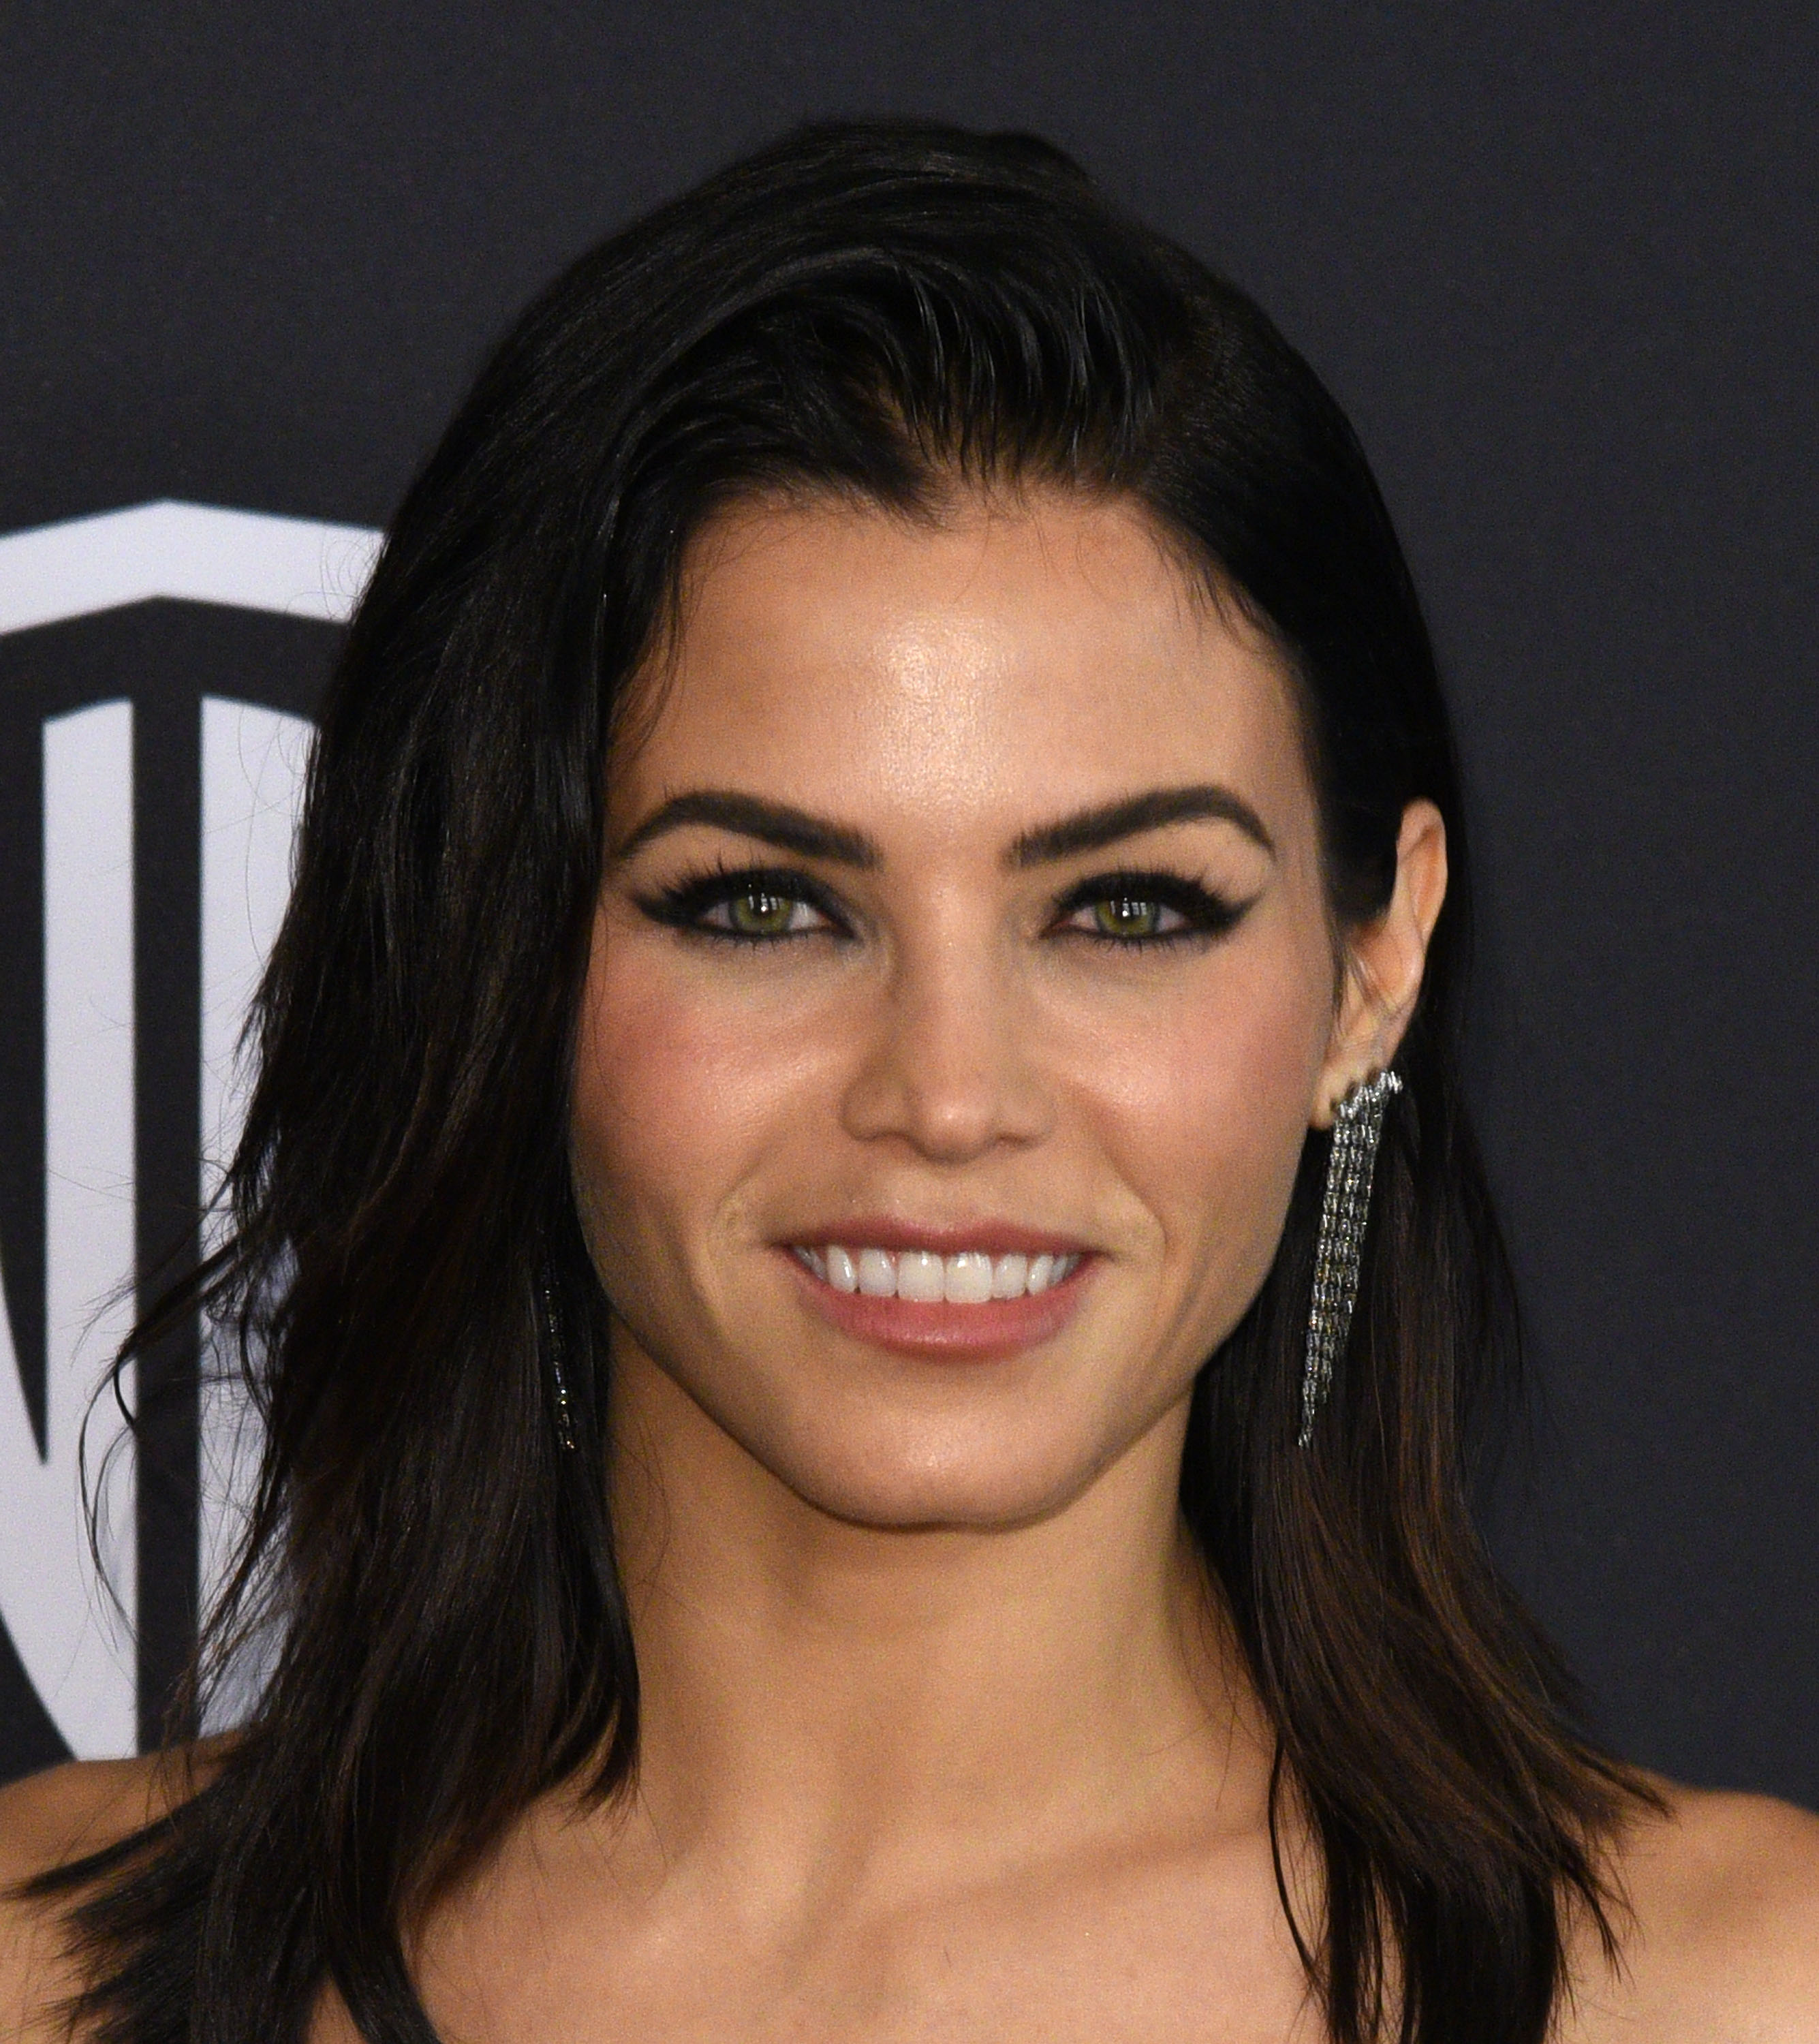 Jenna Dewan Tatum is saving this dress for her daughter for the sweetest reason